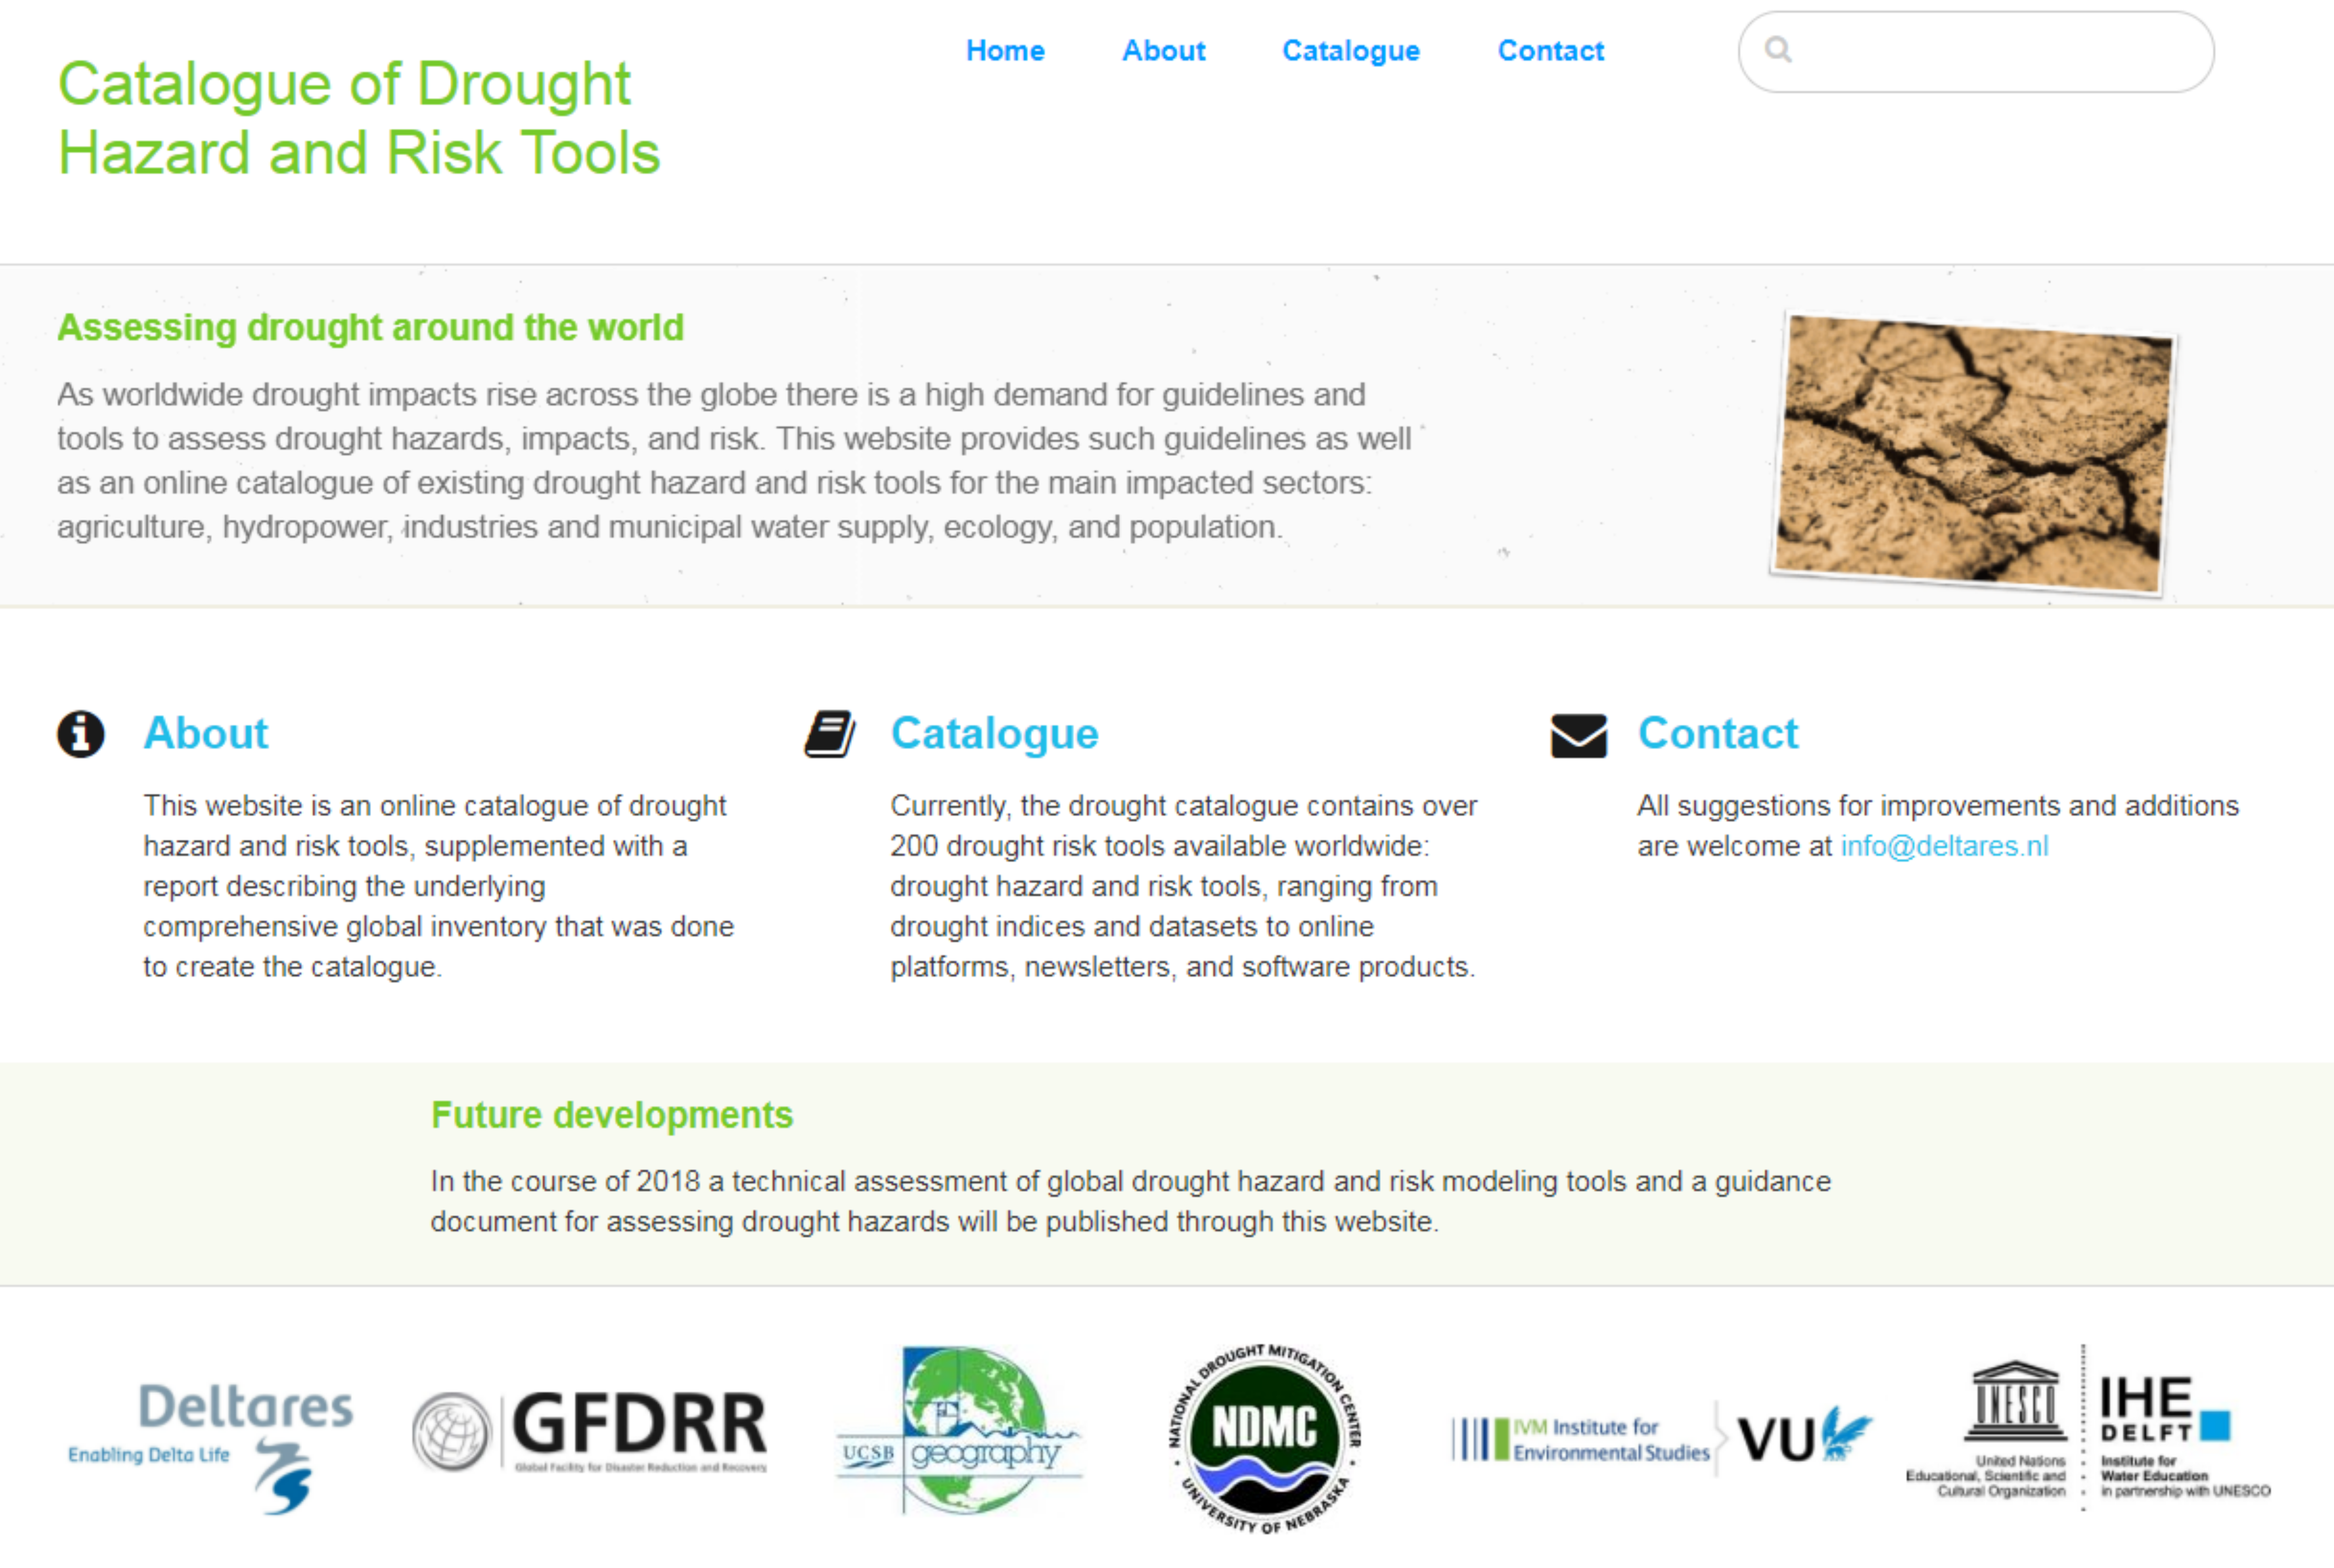 Catalog of Drought Hazard